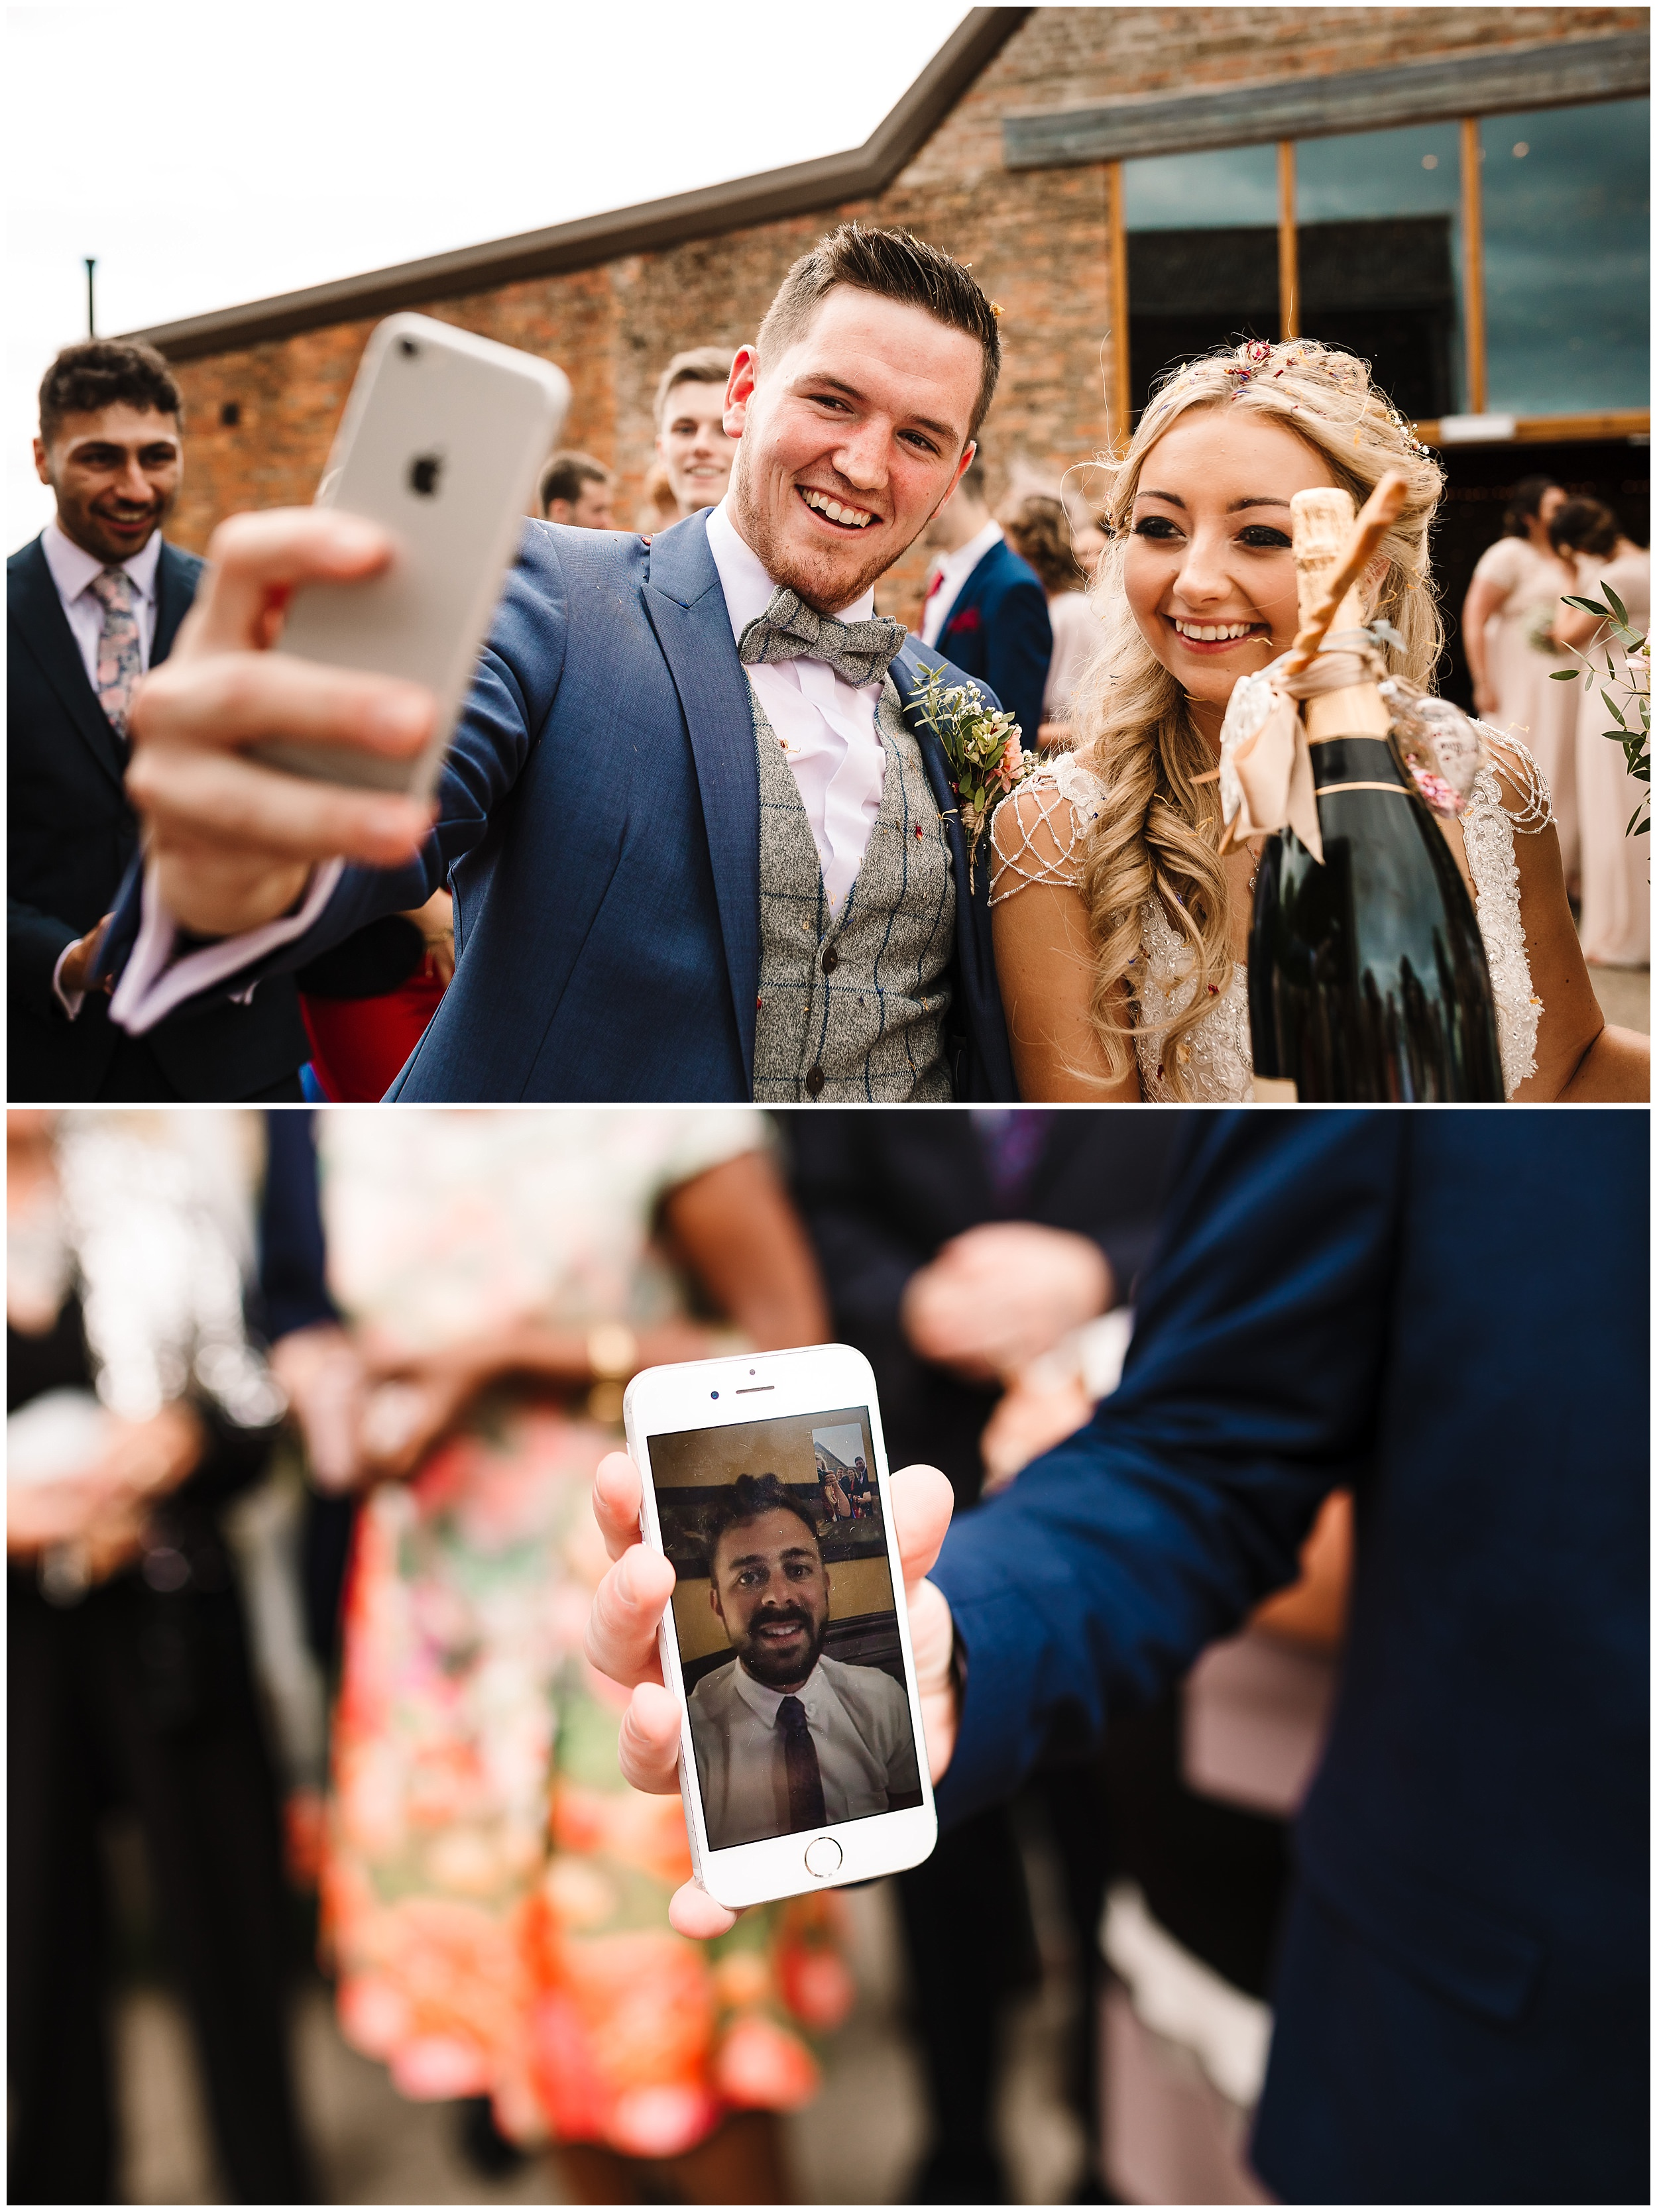 A BRIDE AND GROOM TALK TO THEIR FRIEND ON FACETIME AT THEIR WEDDING